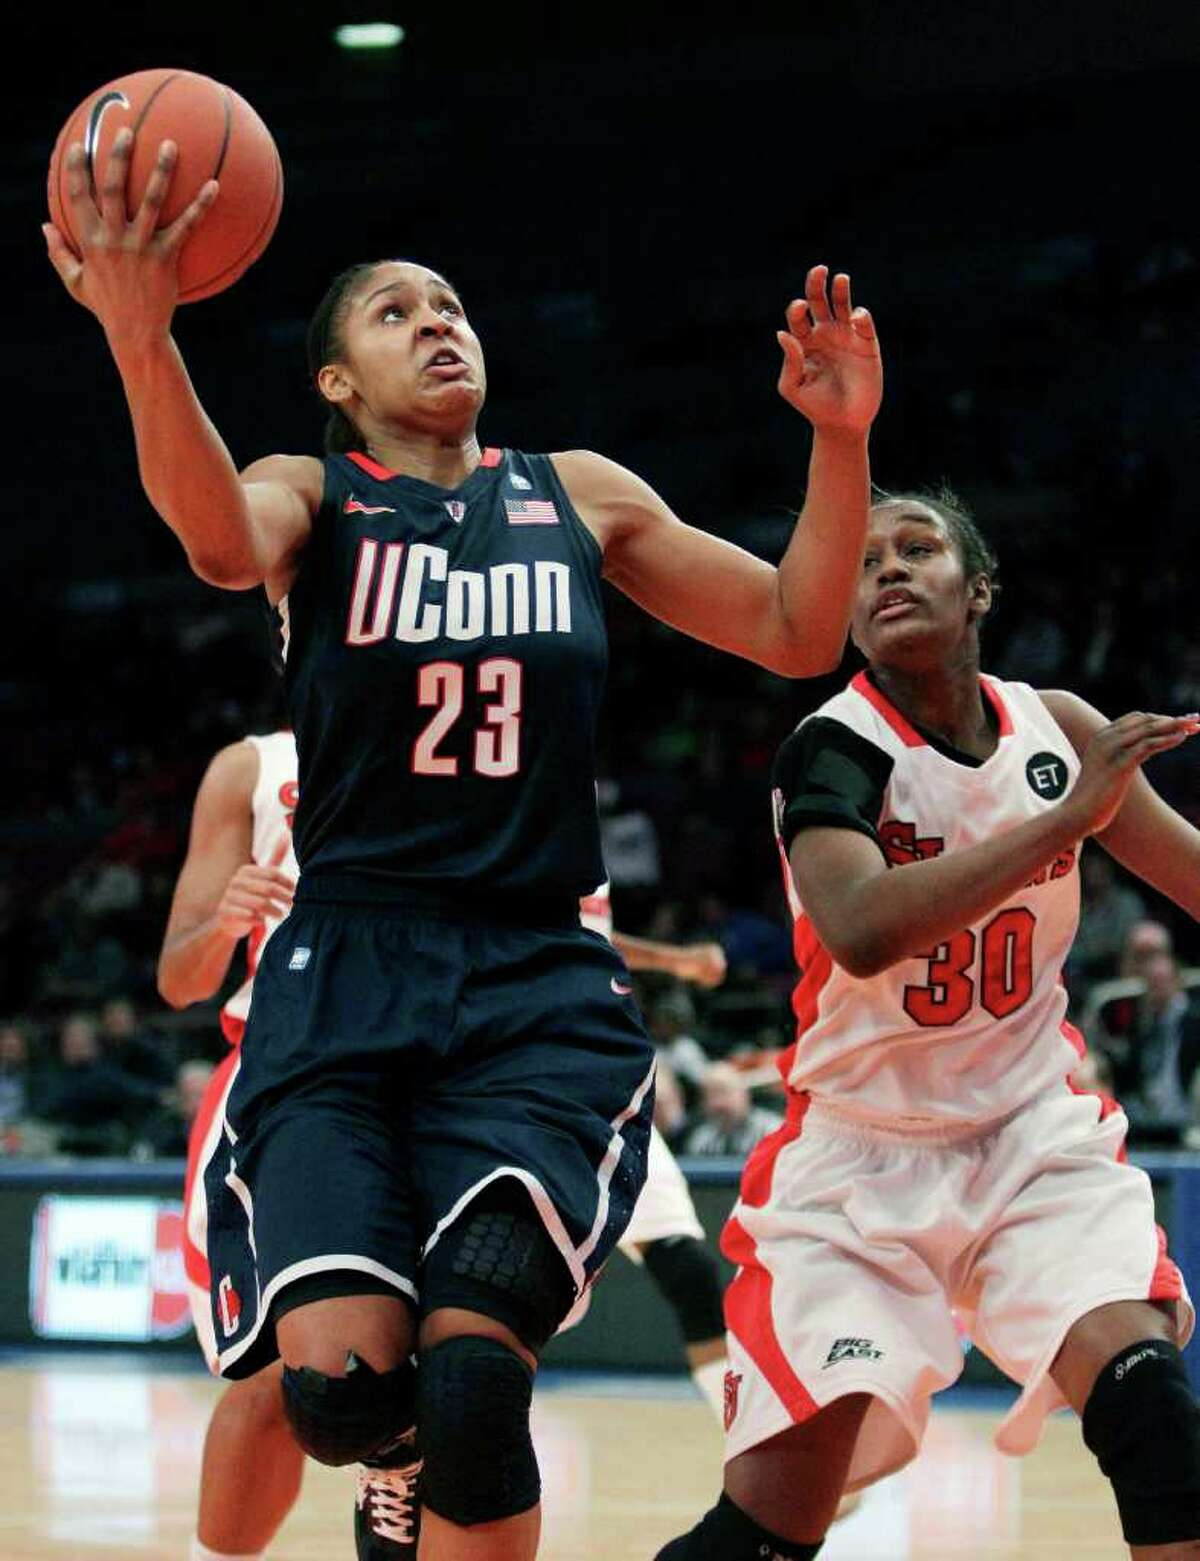 Connecticut's Maya Moore (23) drives past St. John's' Centhya Hart (30) during the first half of an NCAA college basketball game, Wednesday, Jan. 12, 2011, in New York. (AP Photo/Frank Franklin II)